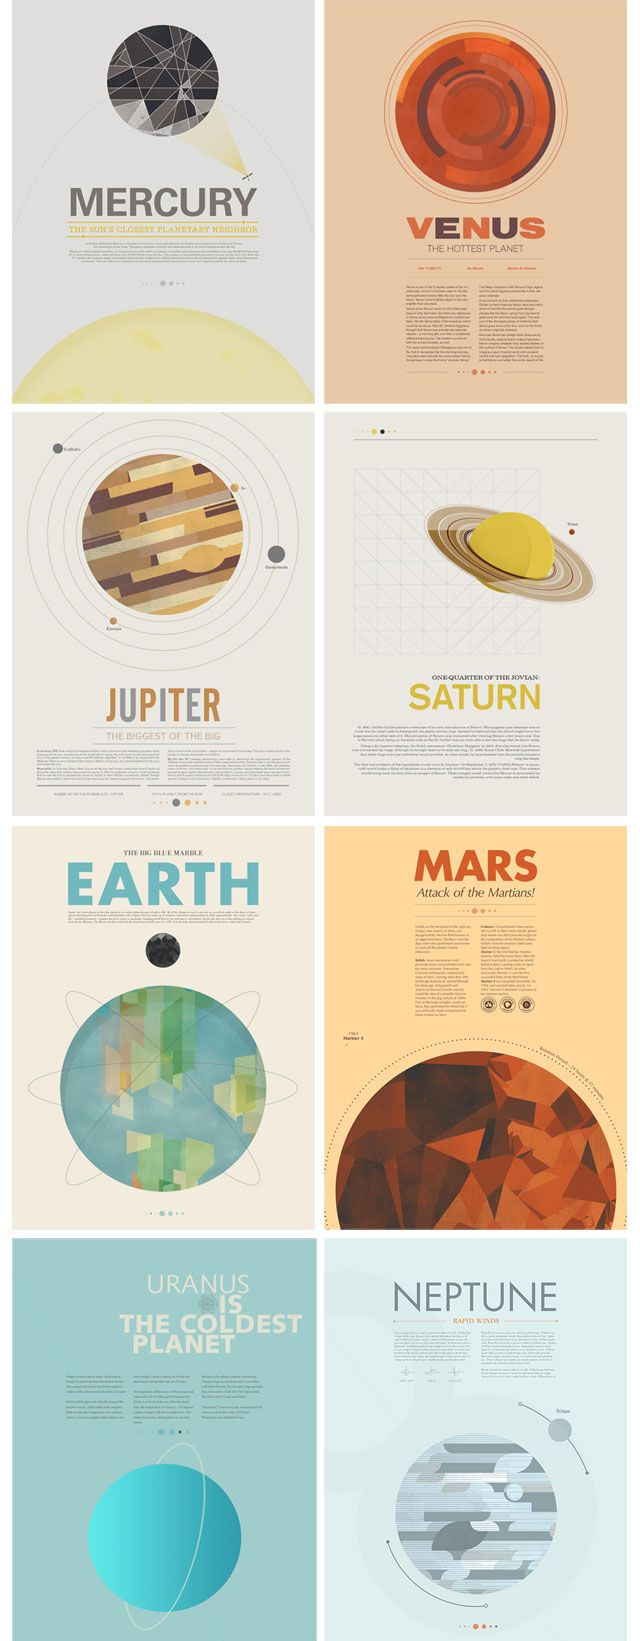 Poster design ideas pinterest - Beyond Earth A Minimal Poster Series By Stephen Di Donato Good Ideas For Space